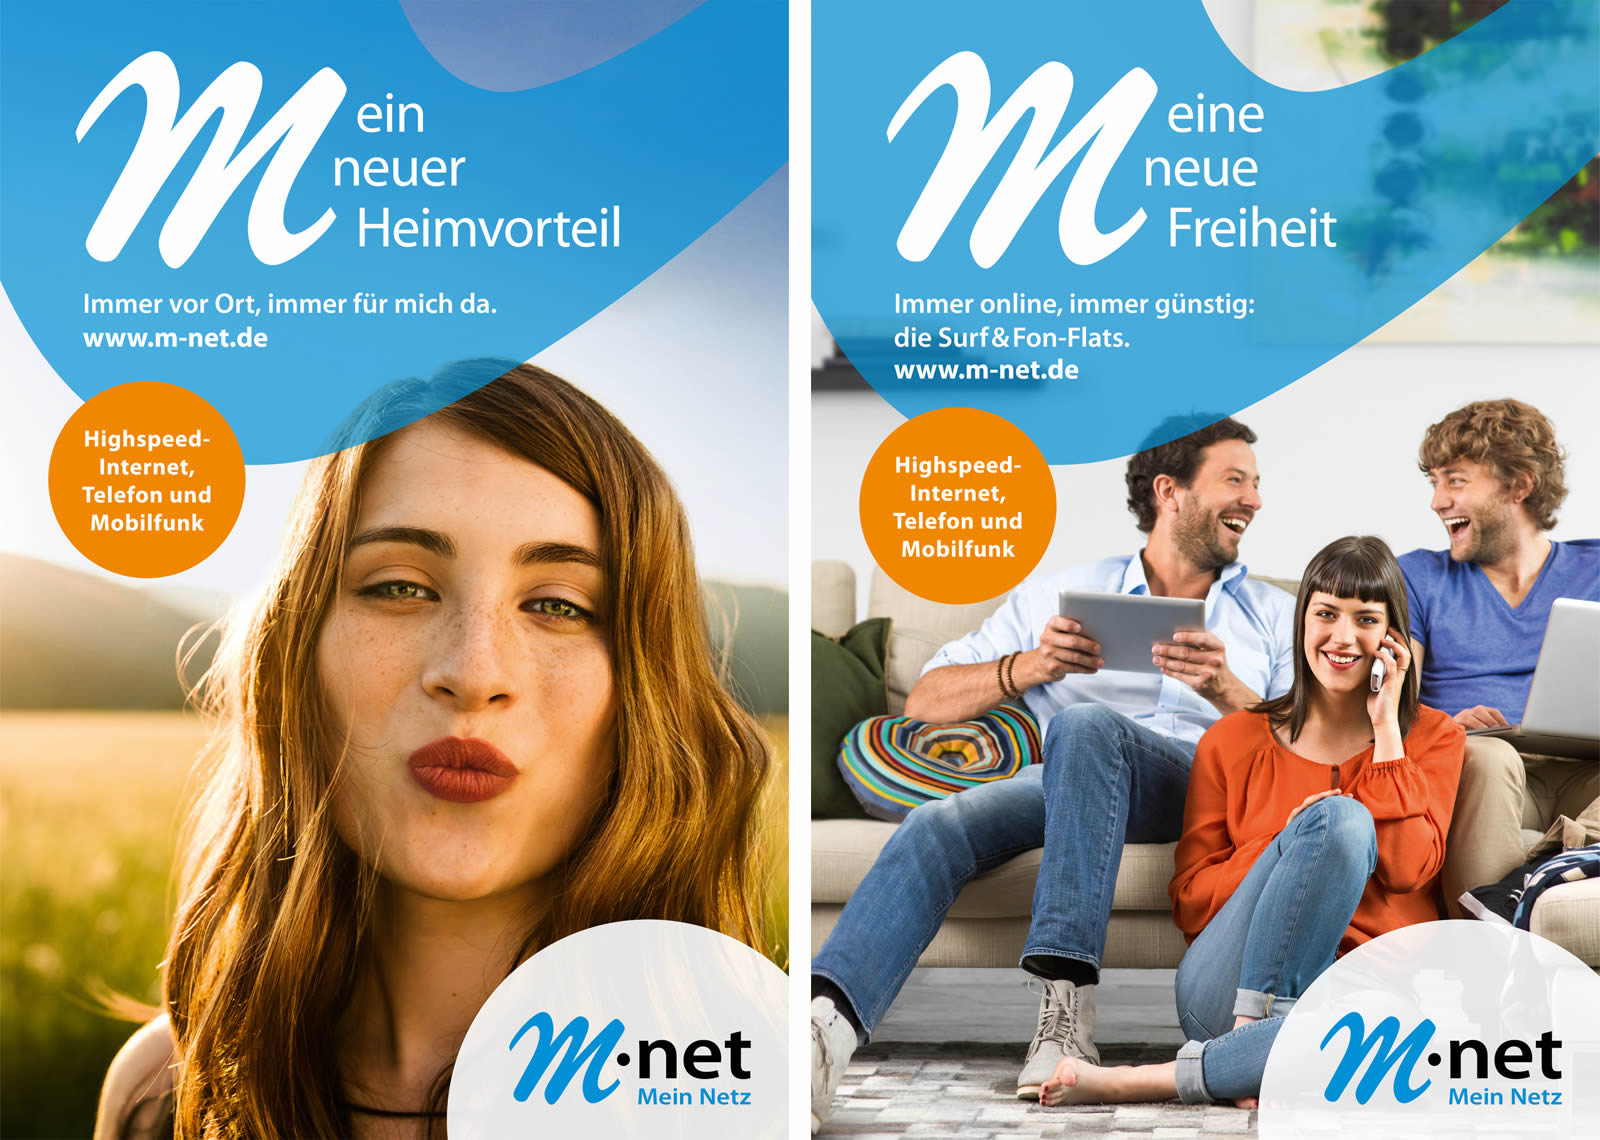 M-net Campaign by Sebastian Stiphout